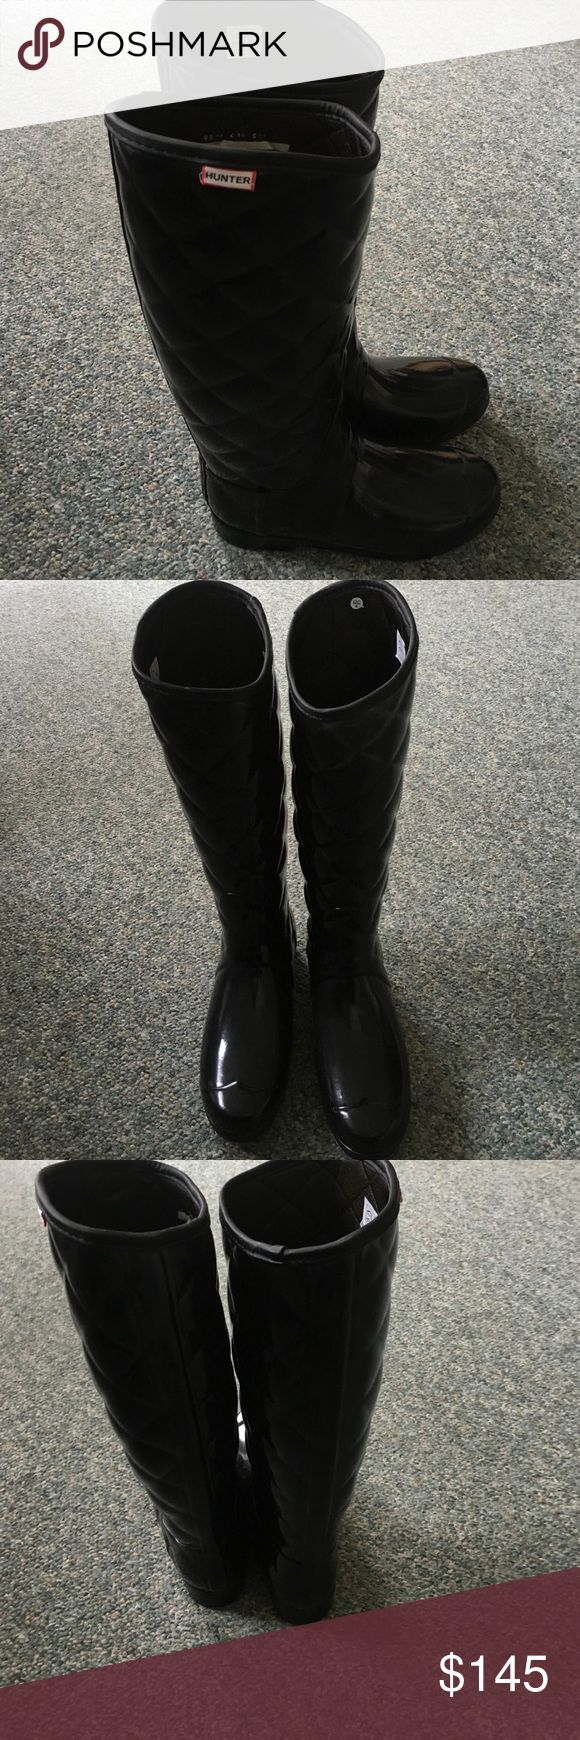 Rubber mats exeter - Hunter Boots Neiman Marcus Exclusive Black Rubber